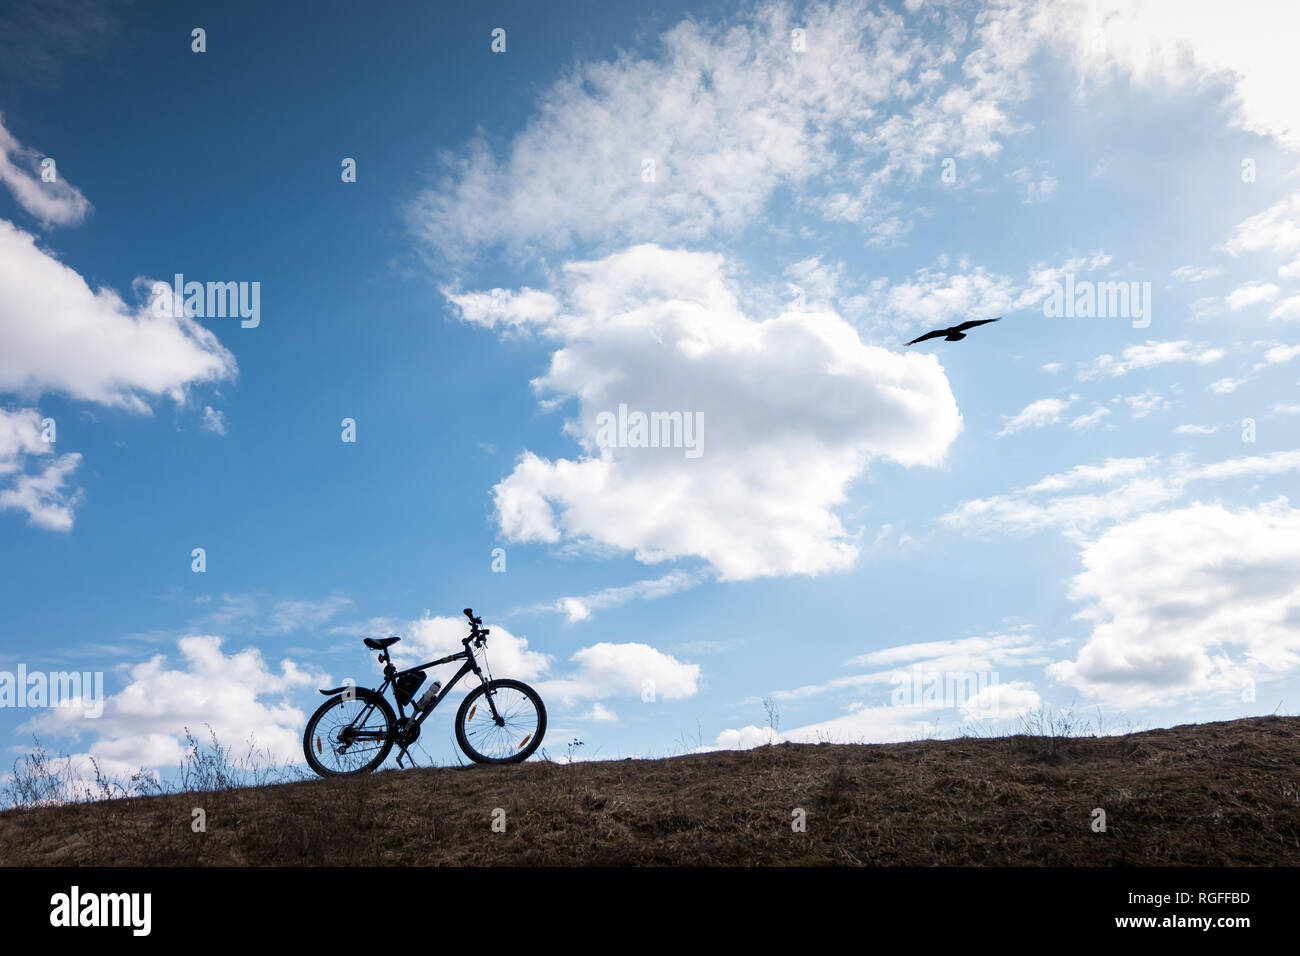 Bike silhouette in blue sky with clouds. symbol of independence and freedom with flying bird - Stock Image